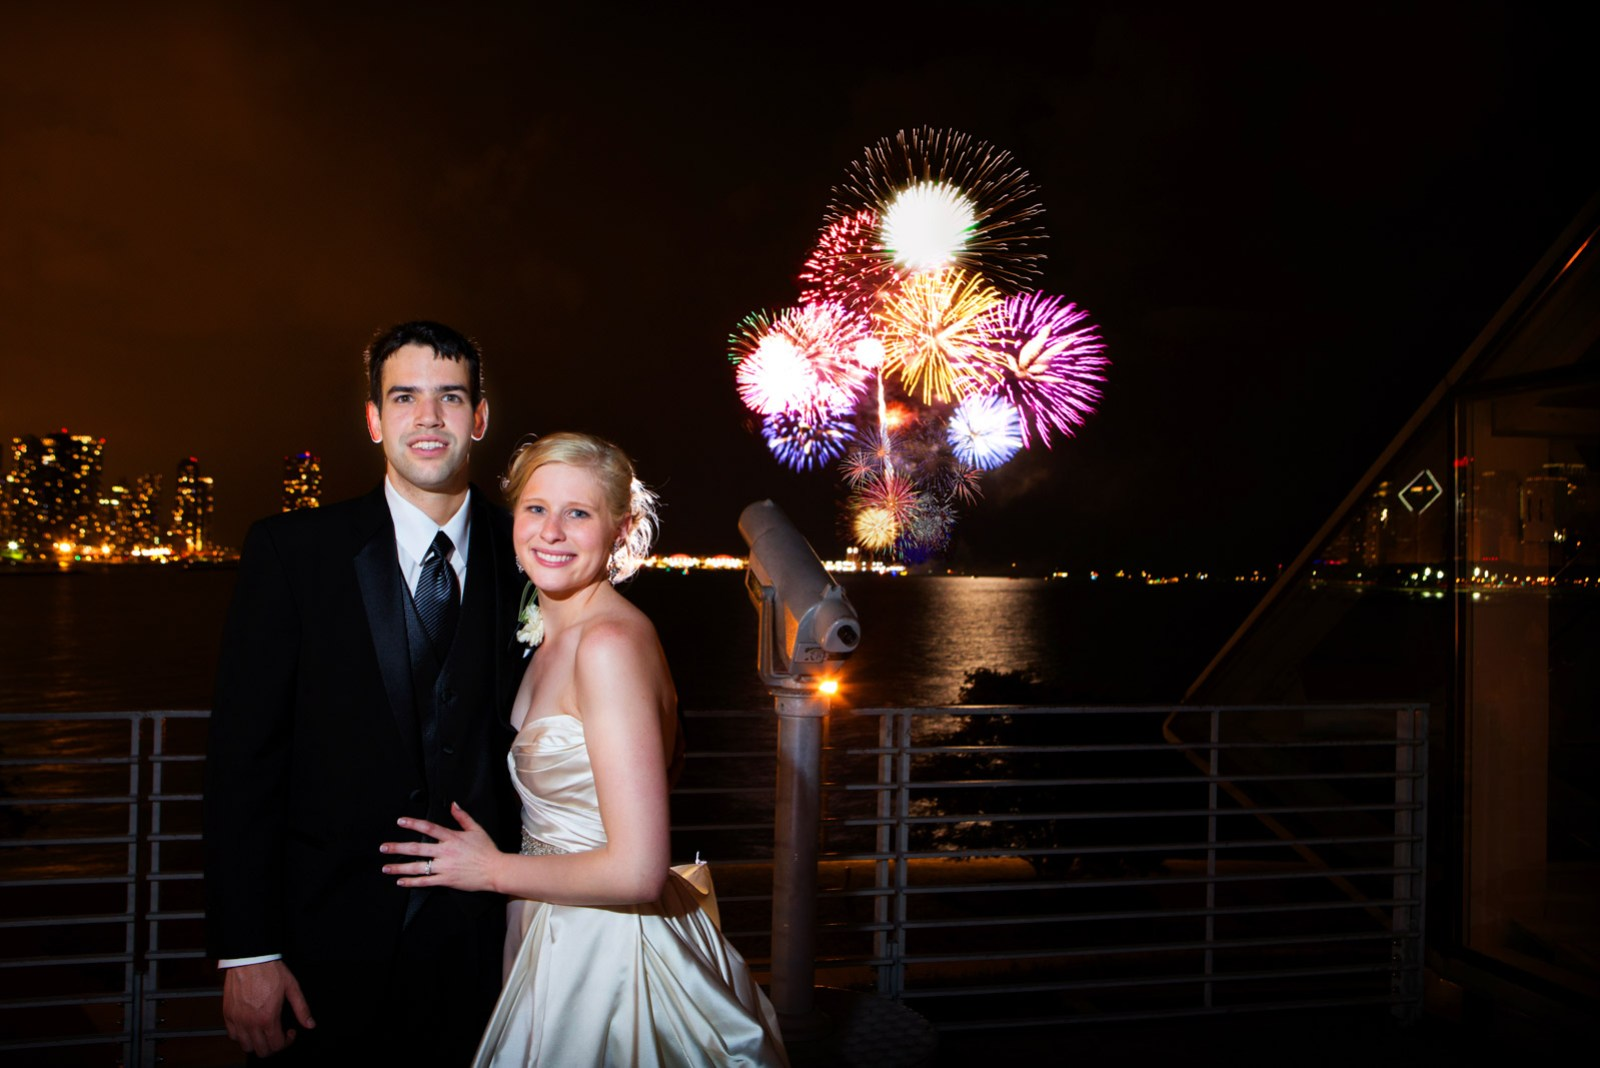 Bride and Groom at the Adler Planetarium with Fireworks from Navy Pier in the background